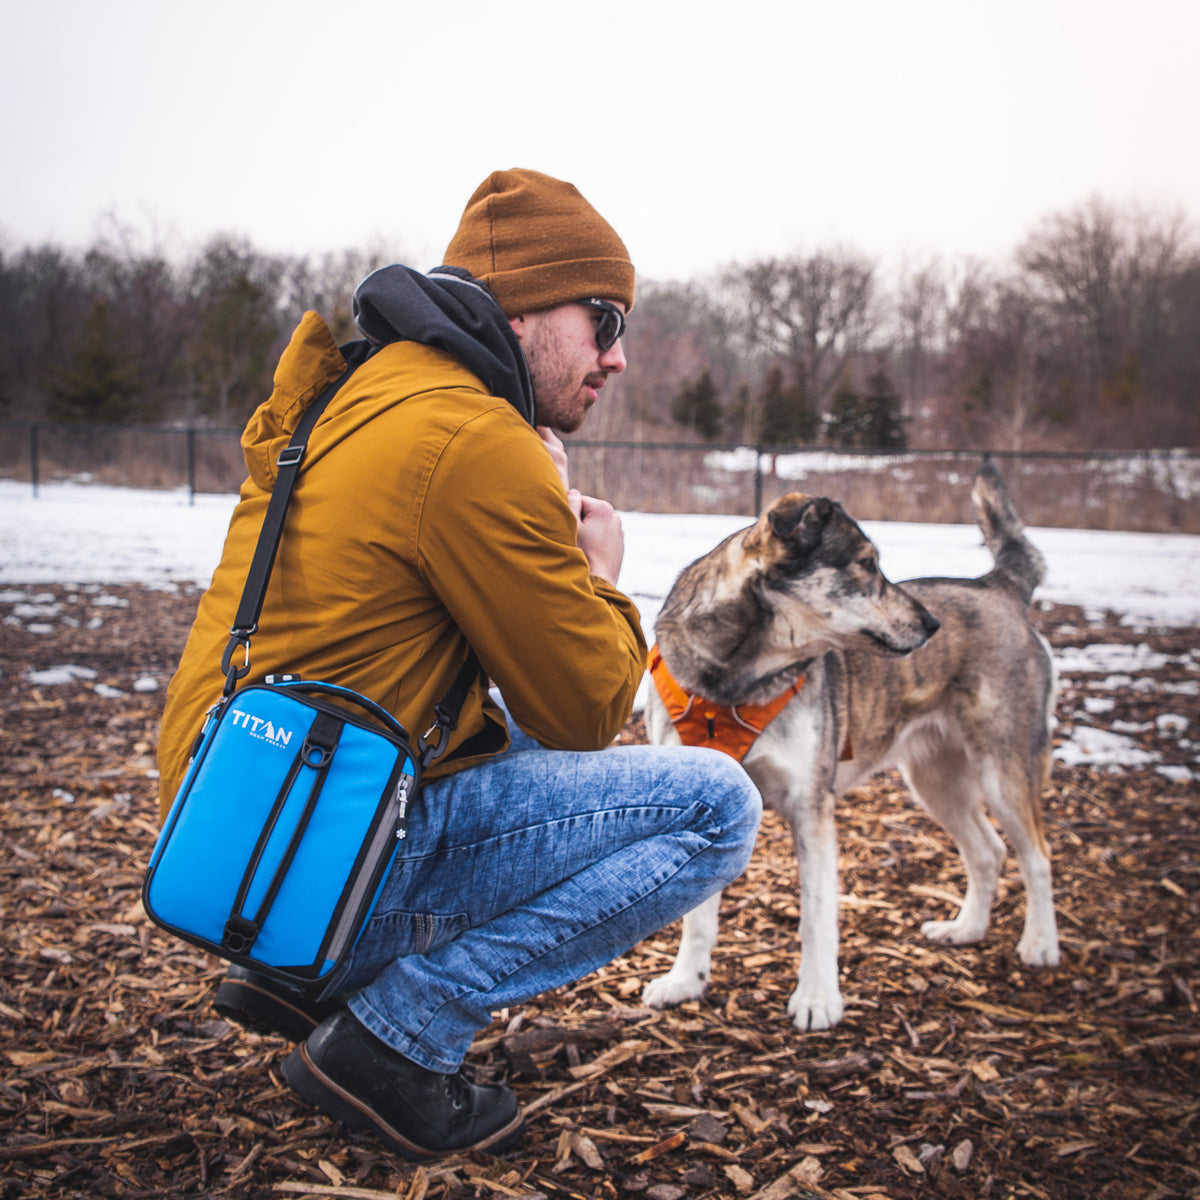 Titan Deep Freeze® Expandable Lunch Box - Blue - Lifestyle, taking the dog for a walk